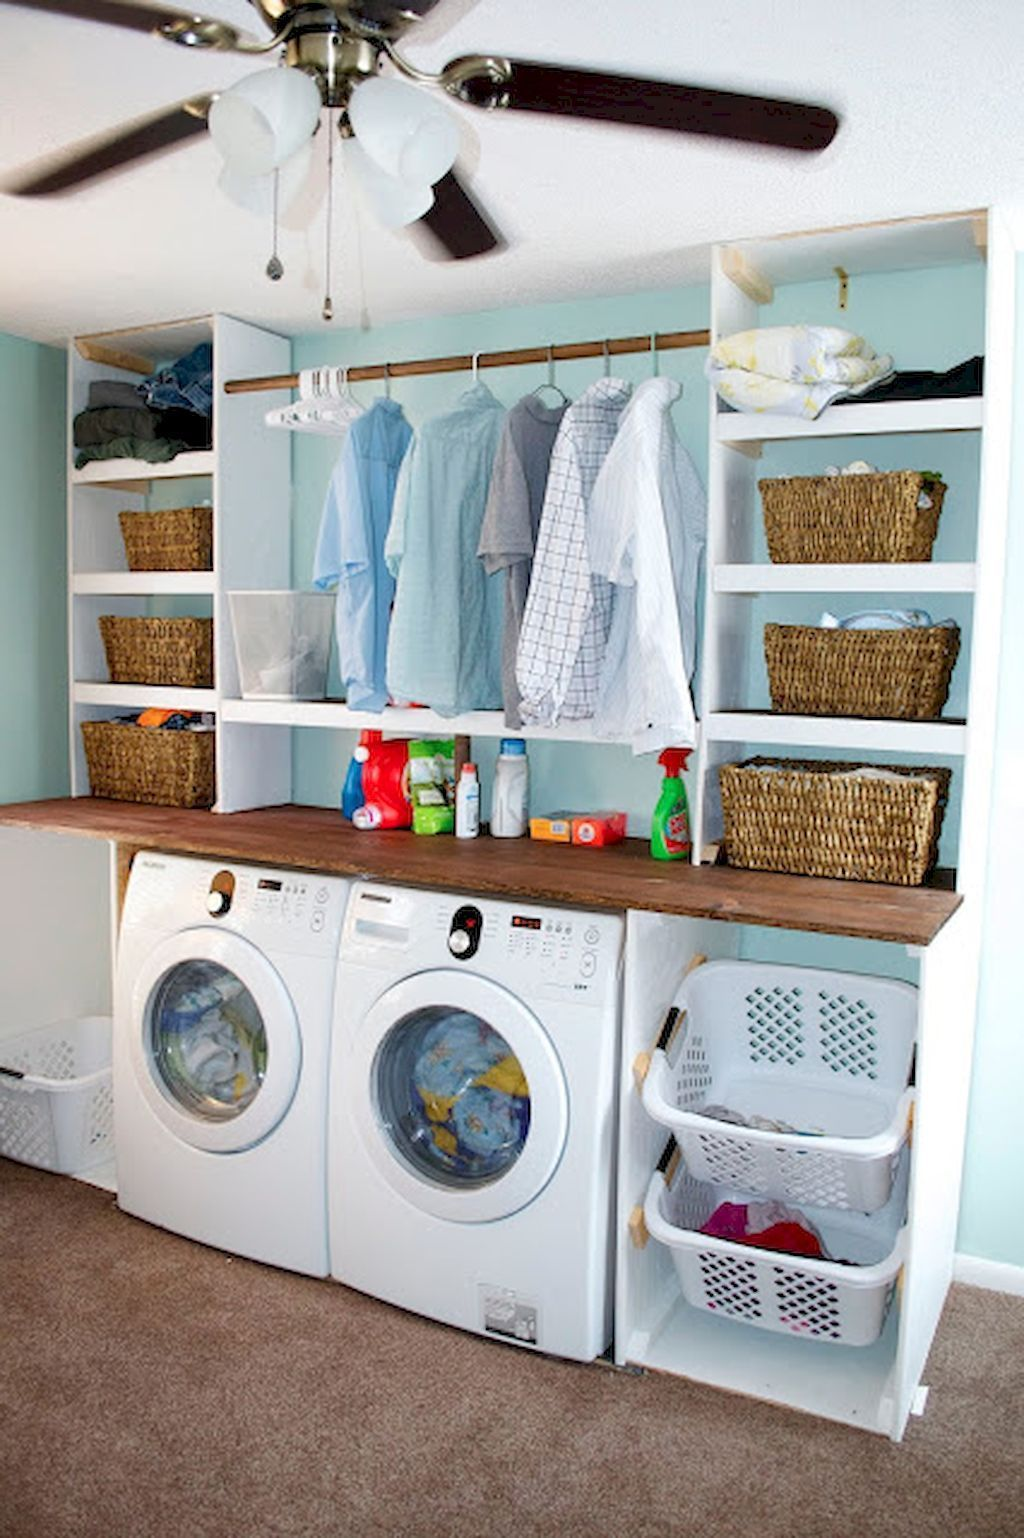 Gorgeous 17 Small Laundry Room Storage Organization Ideas on A